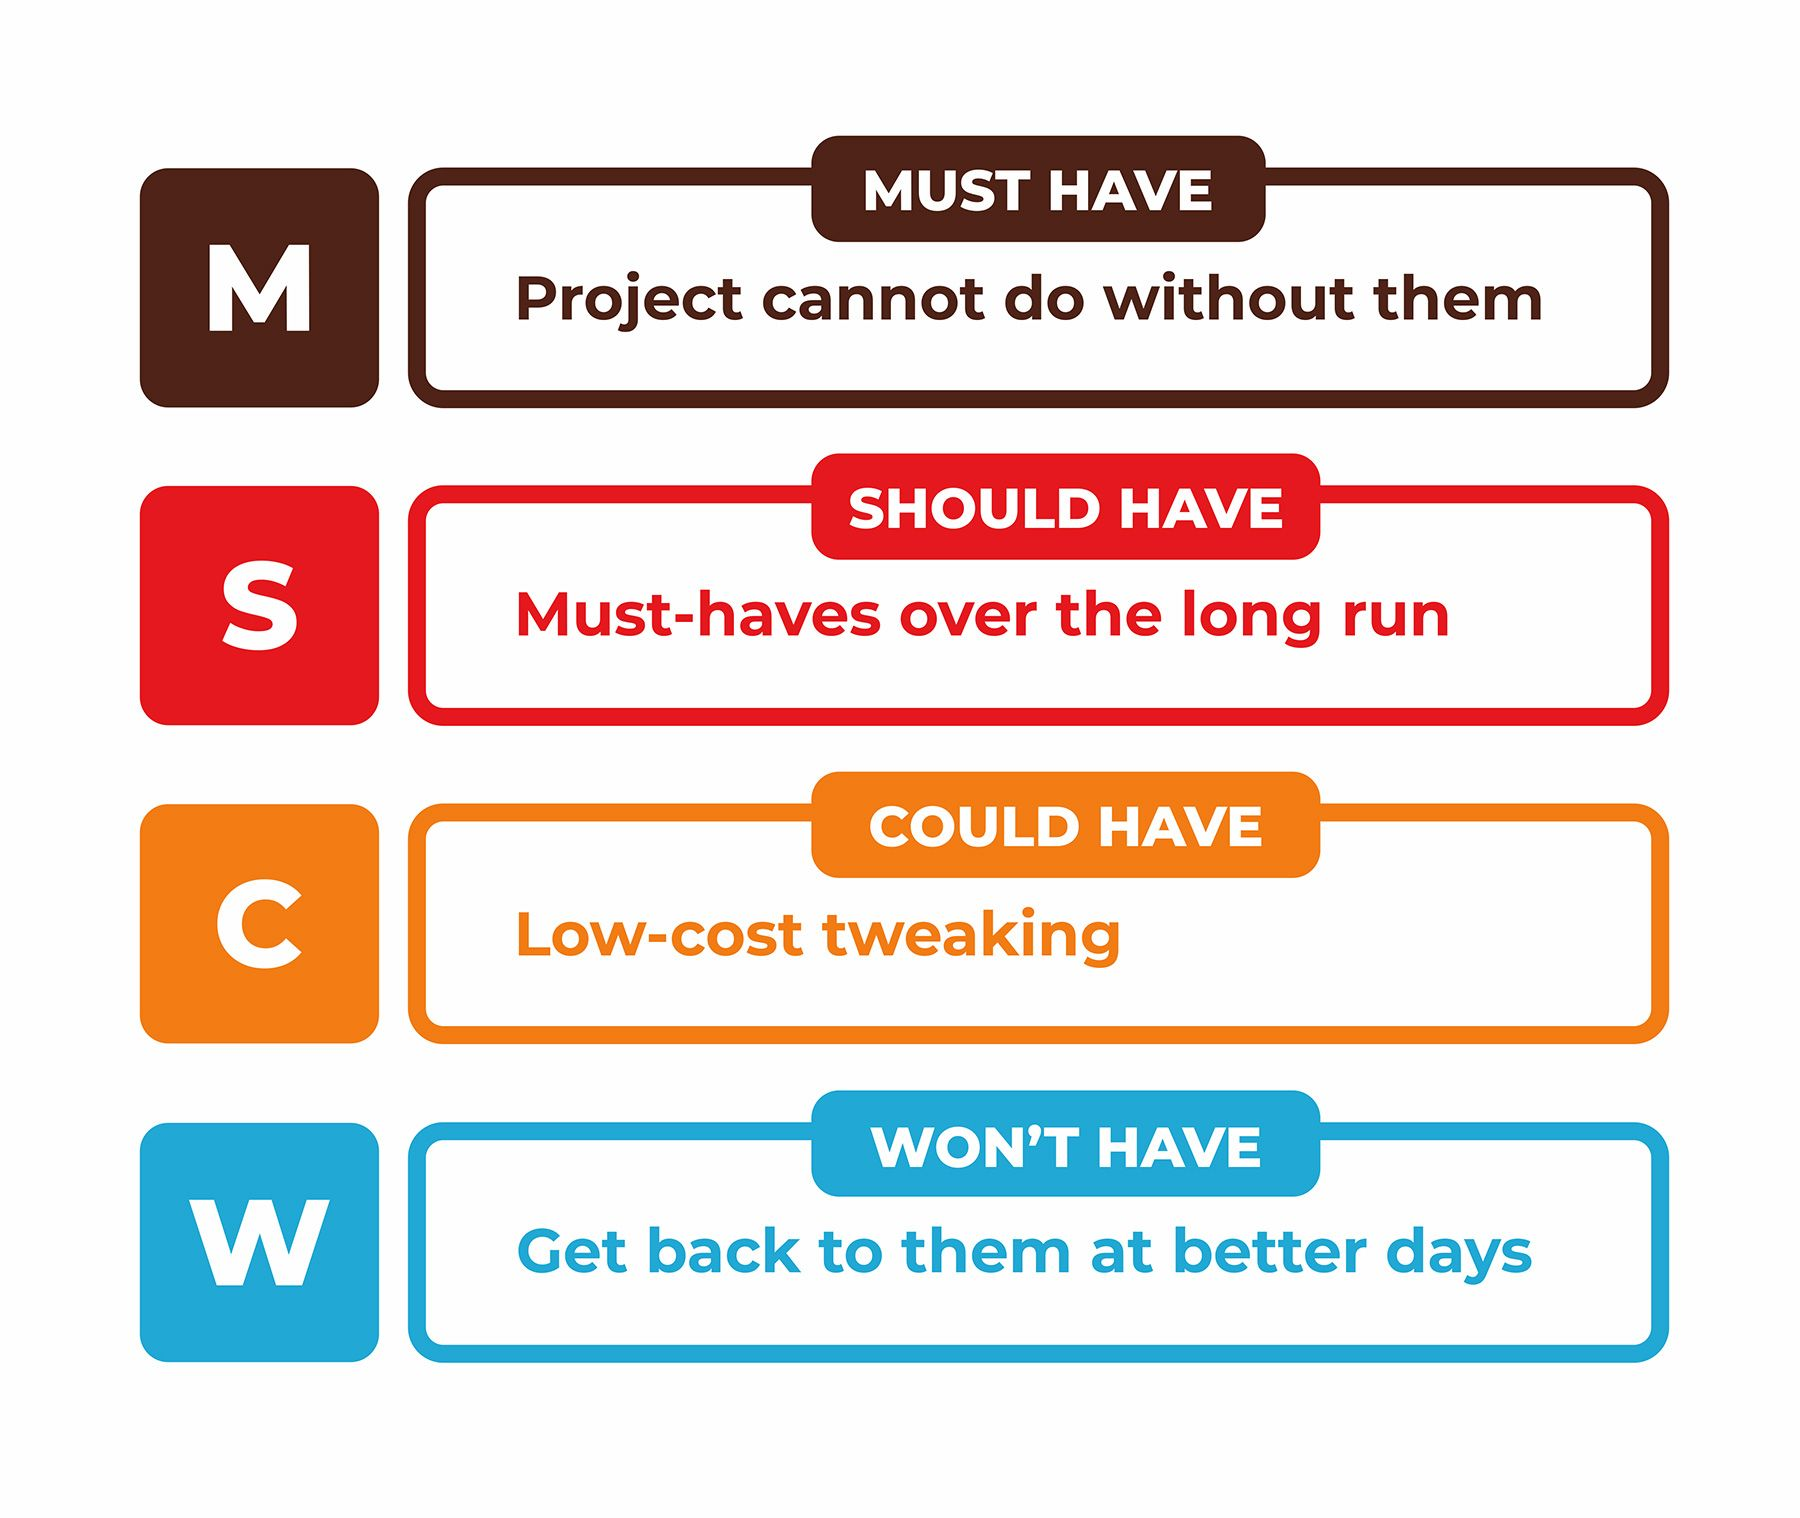 MoSCoW prioritization, also known as the MoSCoW method or MoSCoW analysis, is a popular prioritization technique for managing requirements.